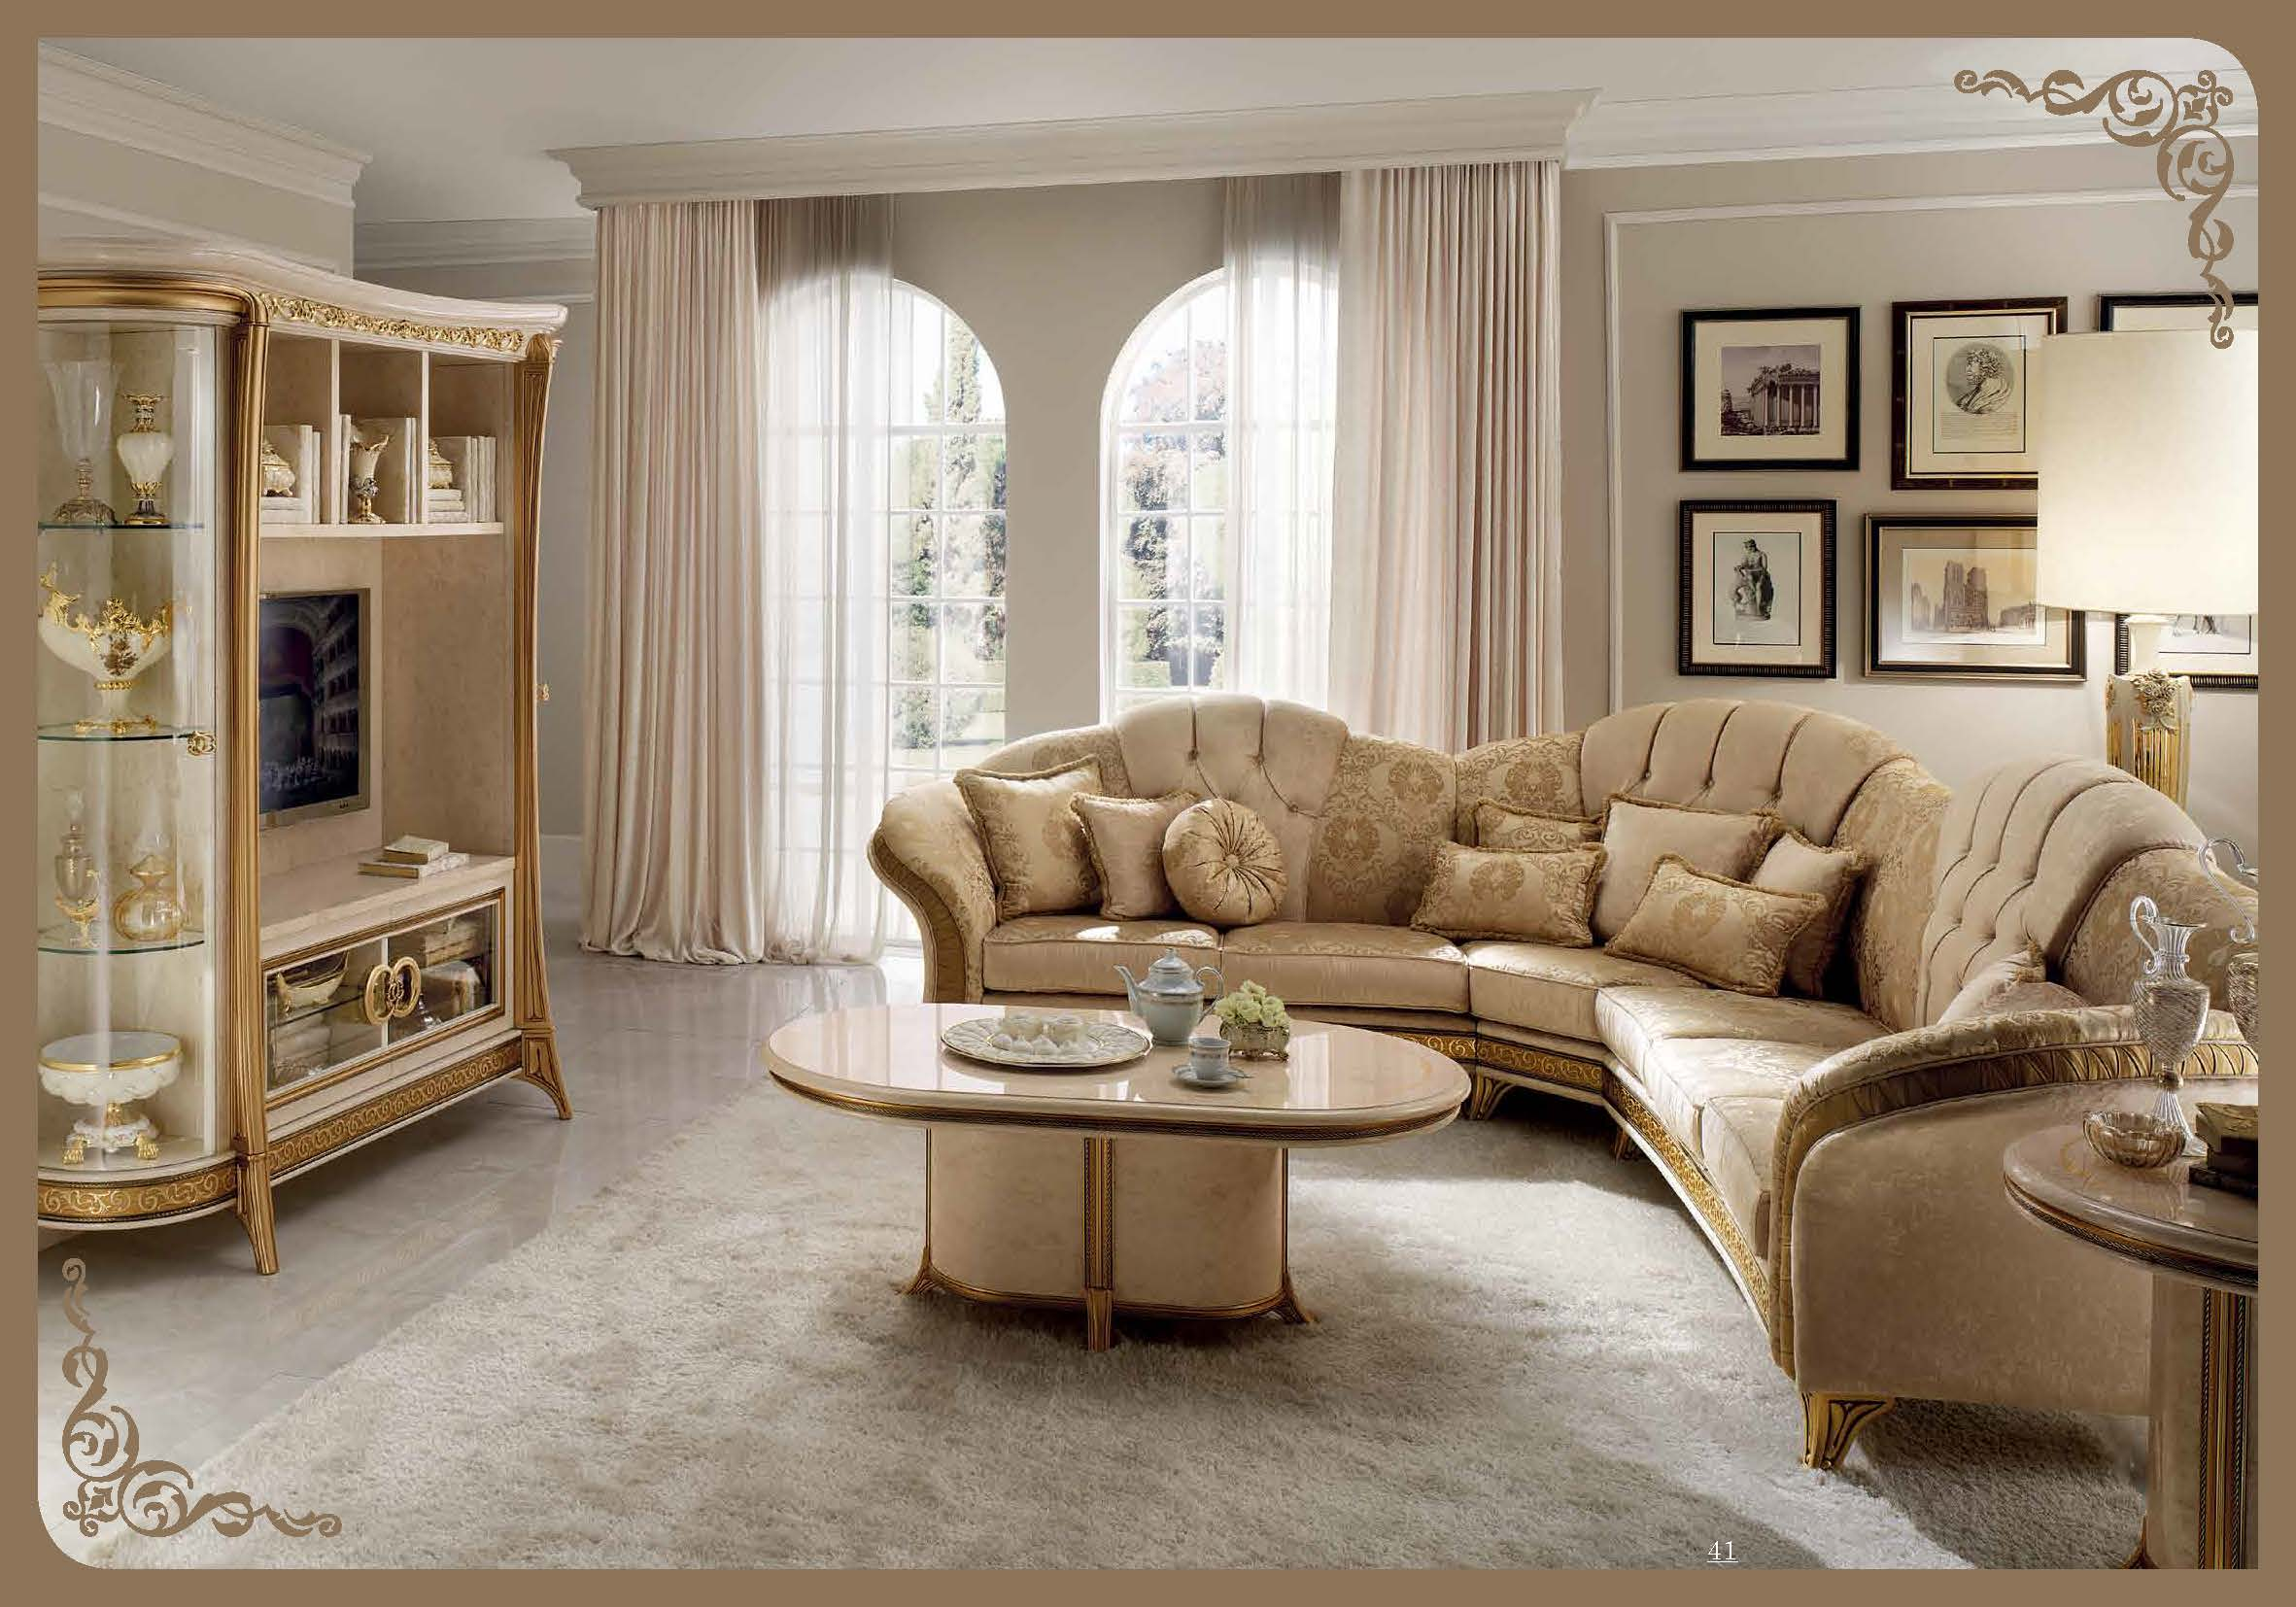 Melodia lounge arredoclassic living room italy collections for Classic furniture design